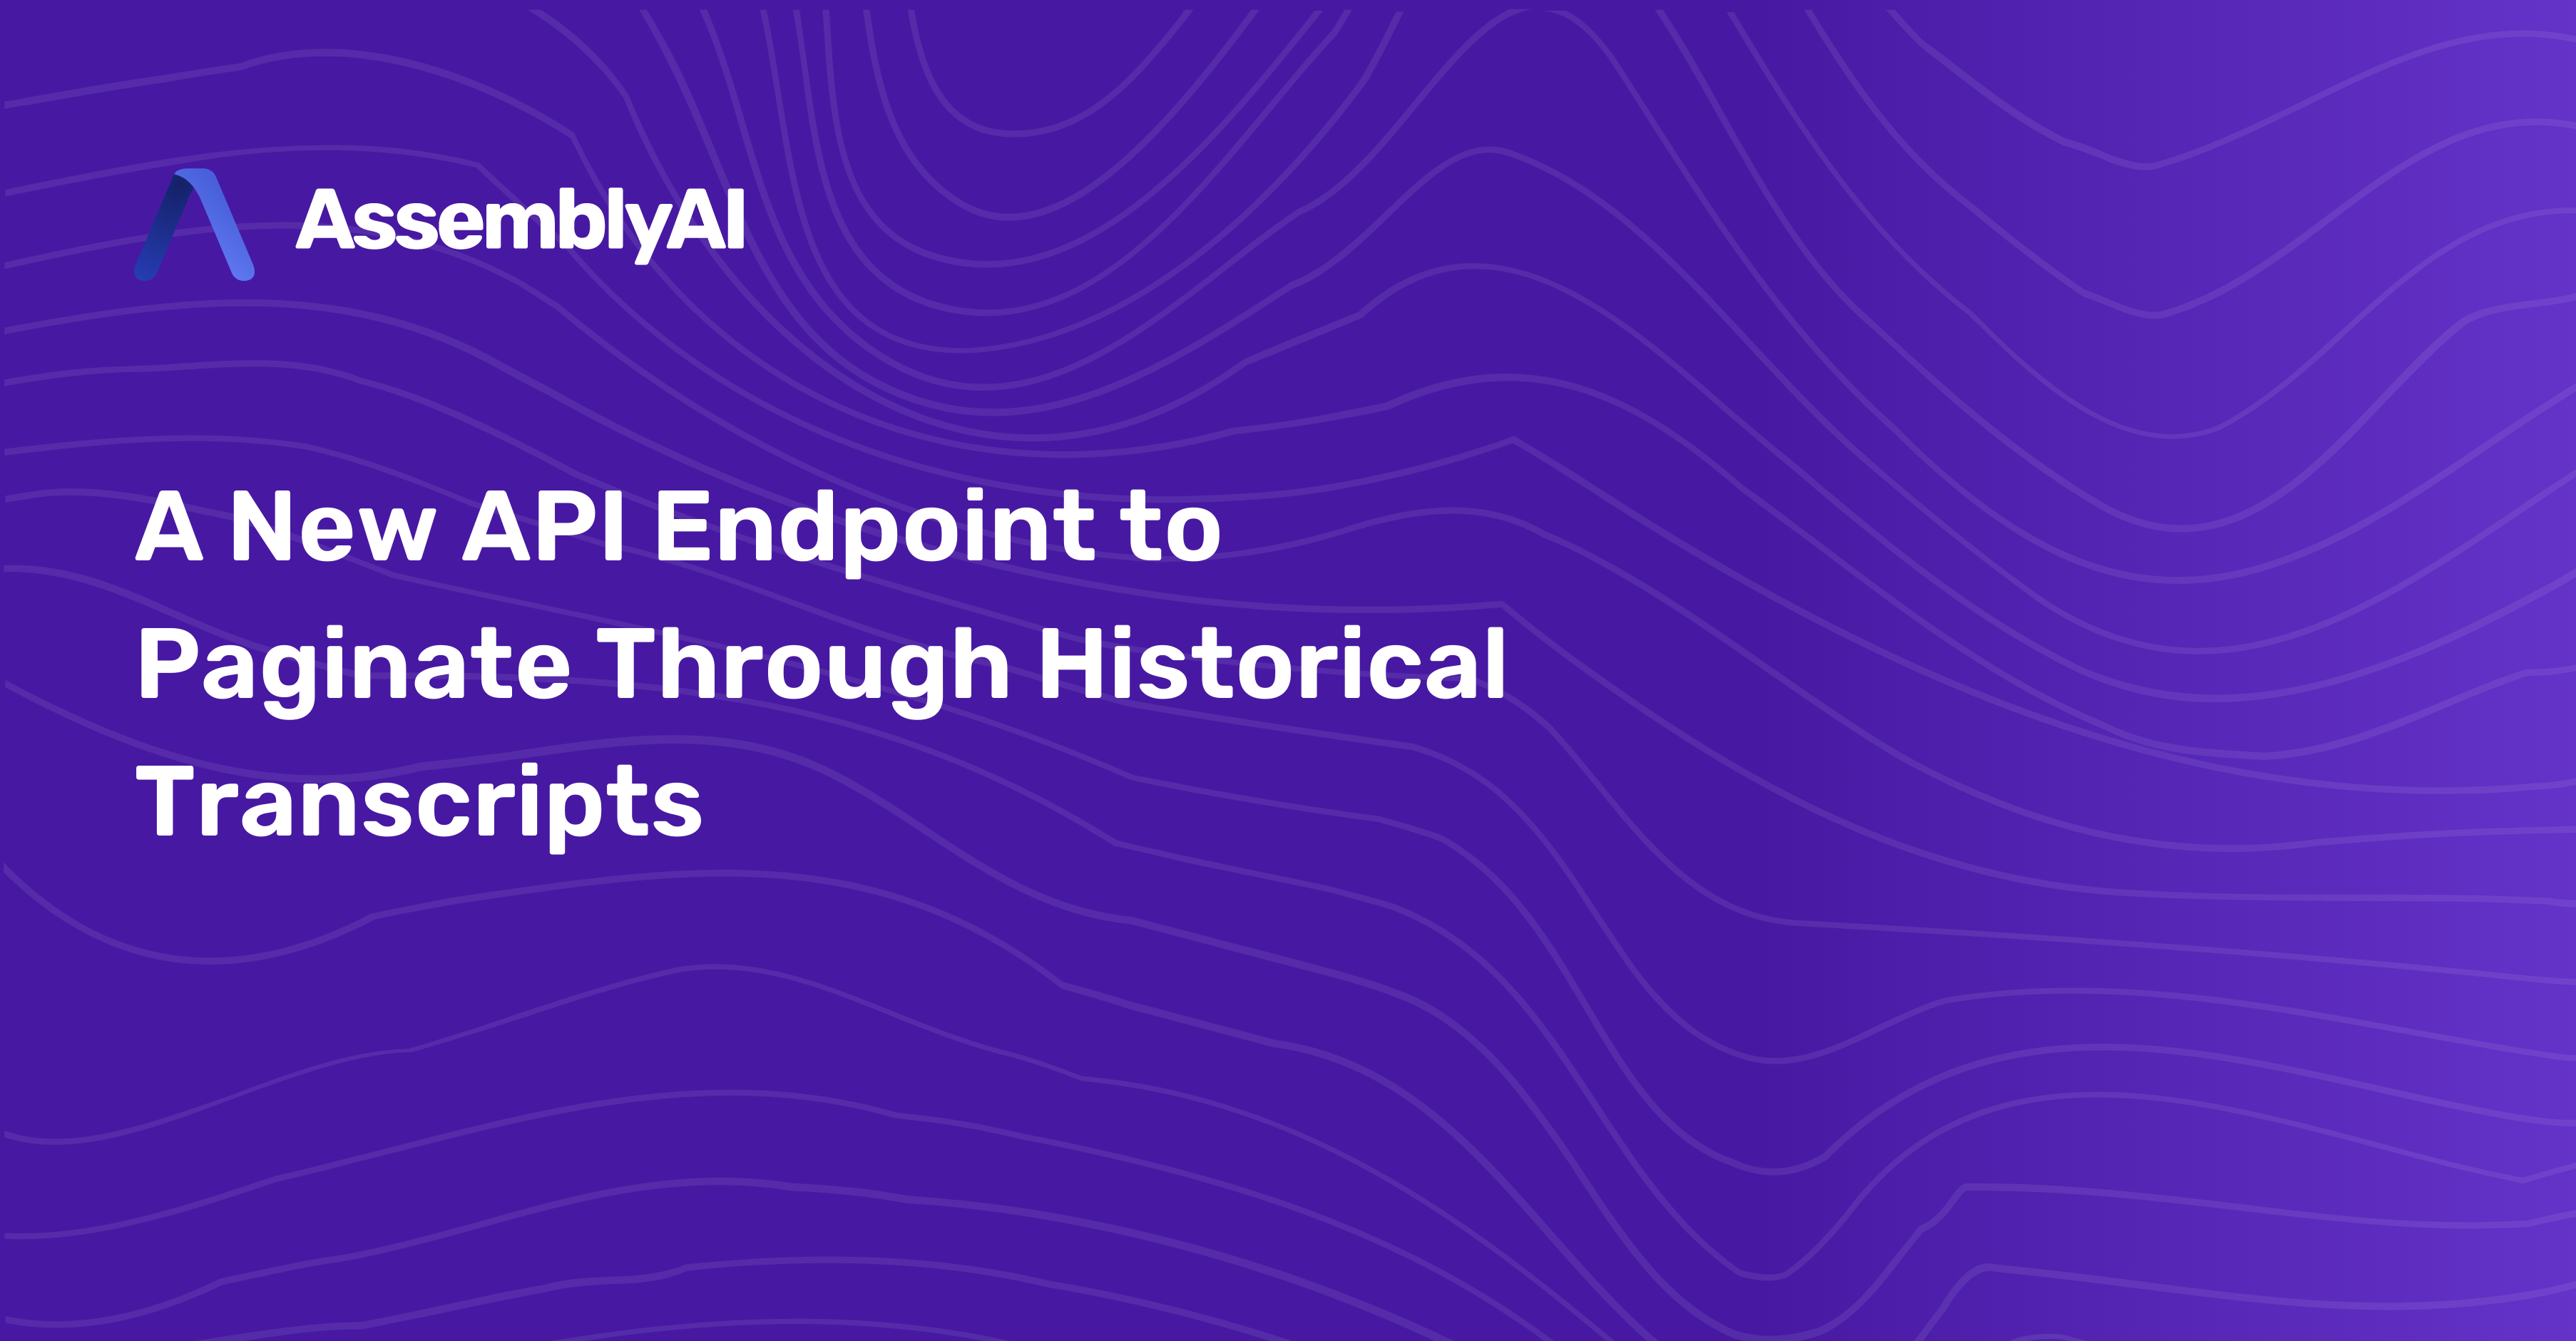 A New API Endpoint to Paginate Through Historical Transcripts